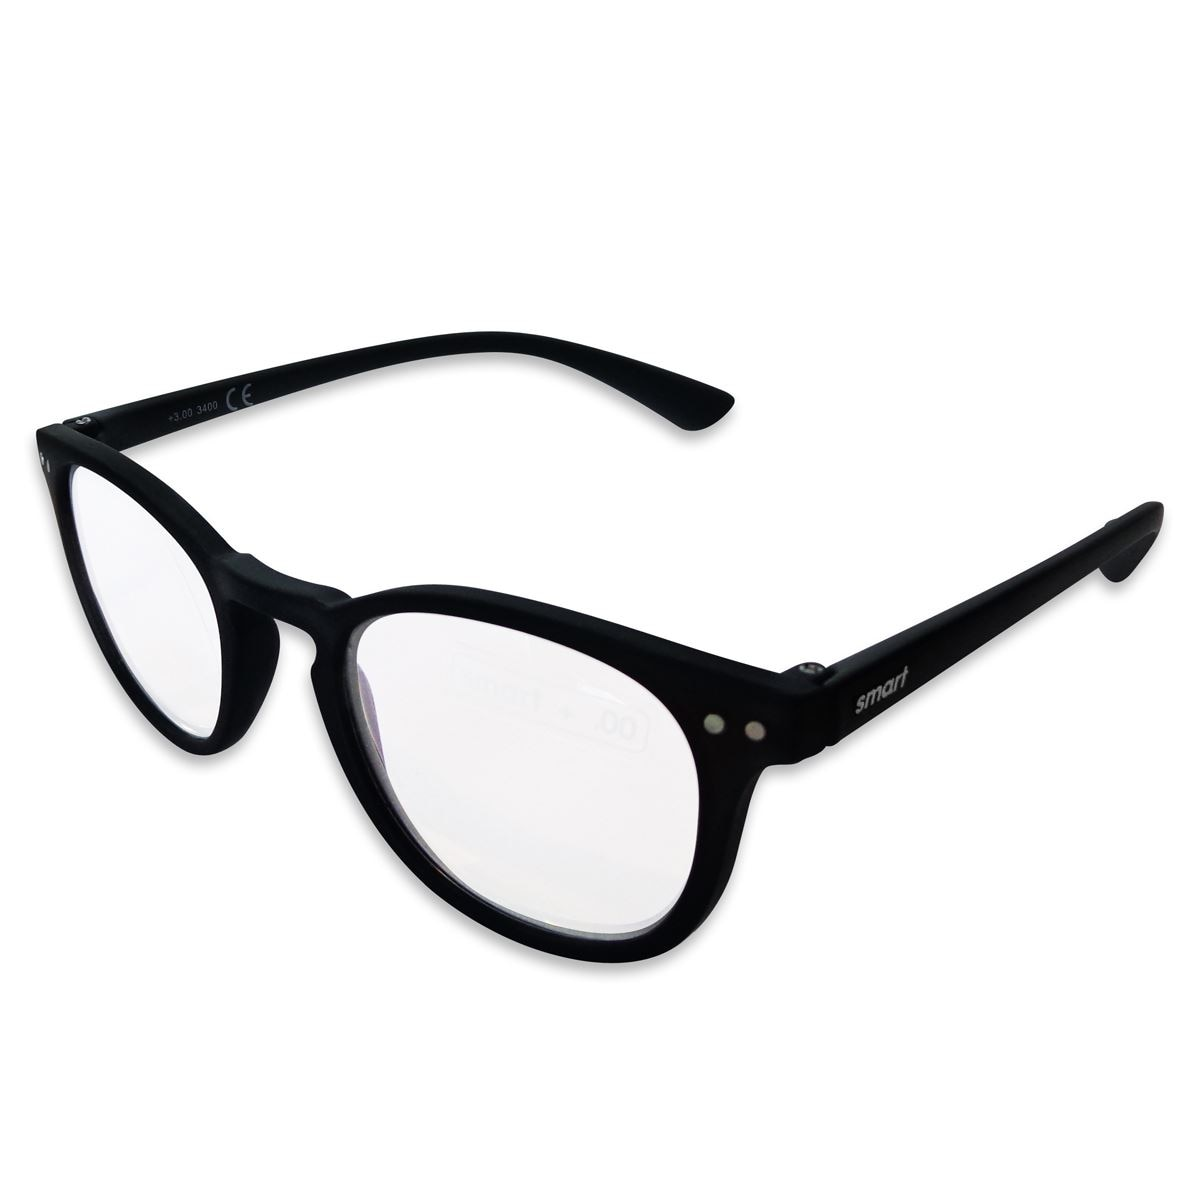 Lente pregraduado.smart Reader round matt black +1.50